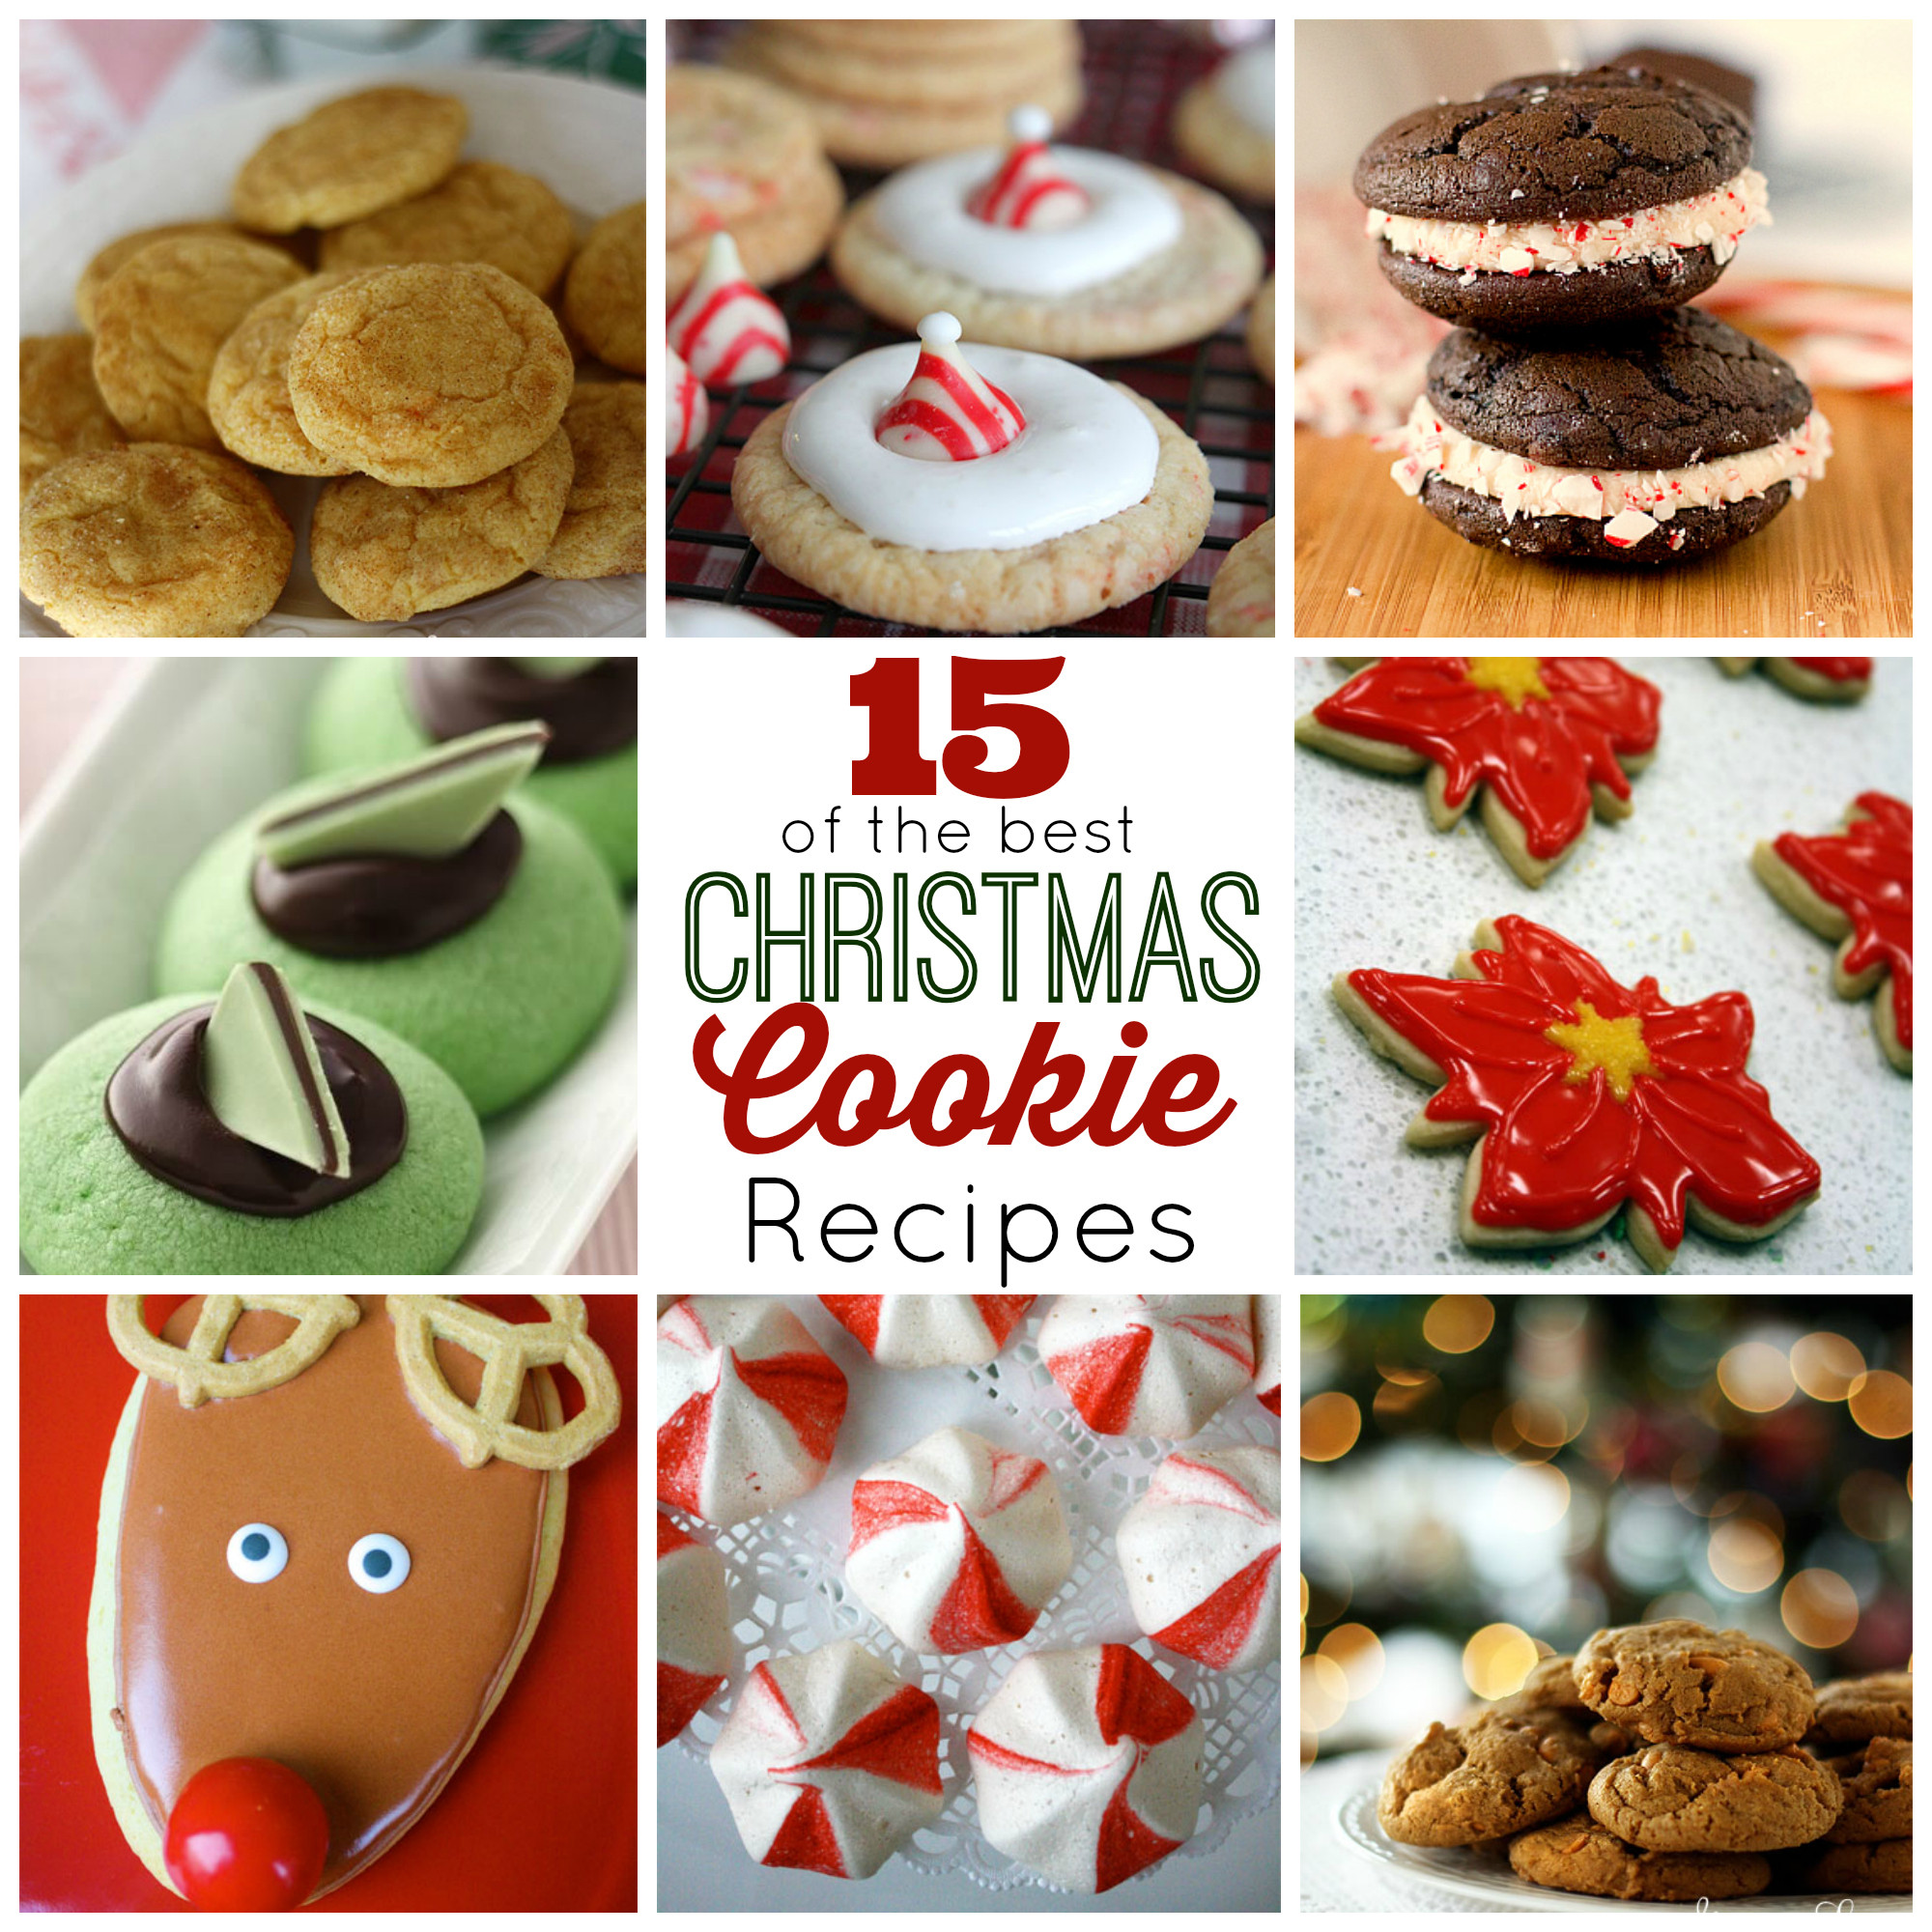 The Best Christmas Cookies Recipes  15 of the Best Christmas Cookies